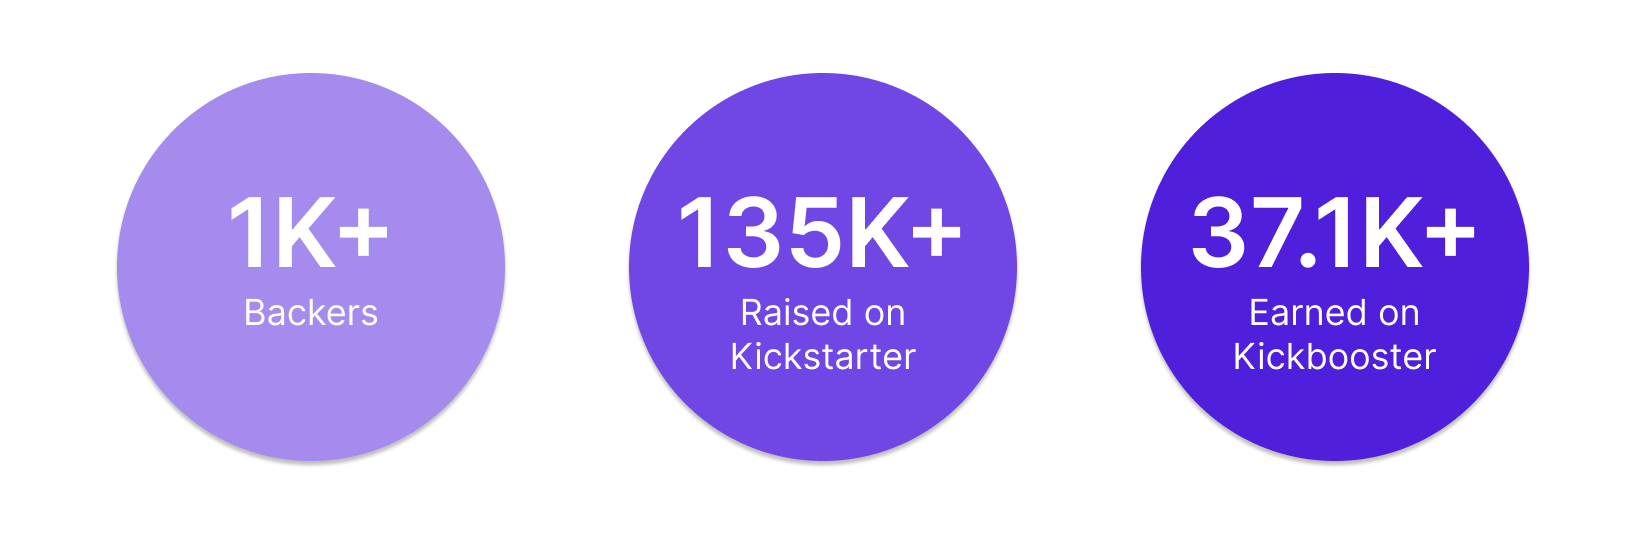 Kickbooster Pledge Manager Results